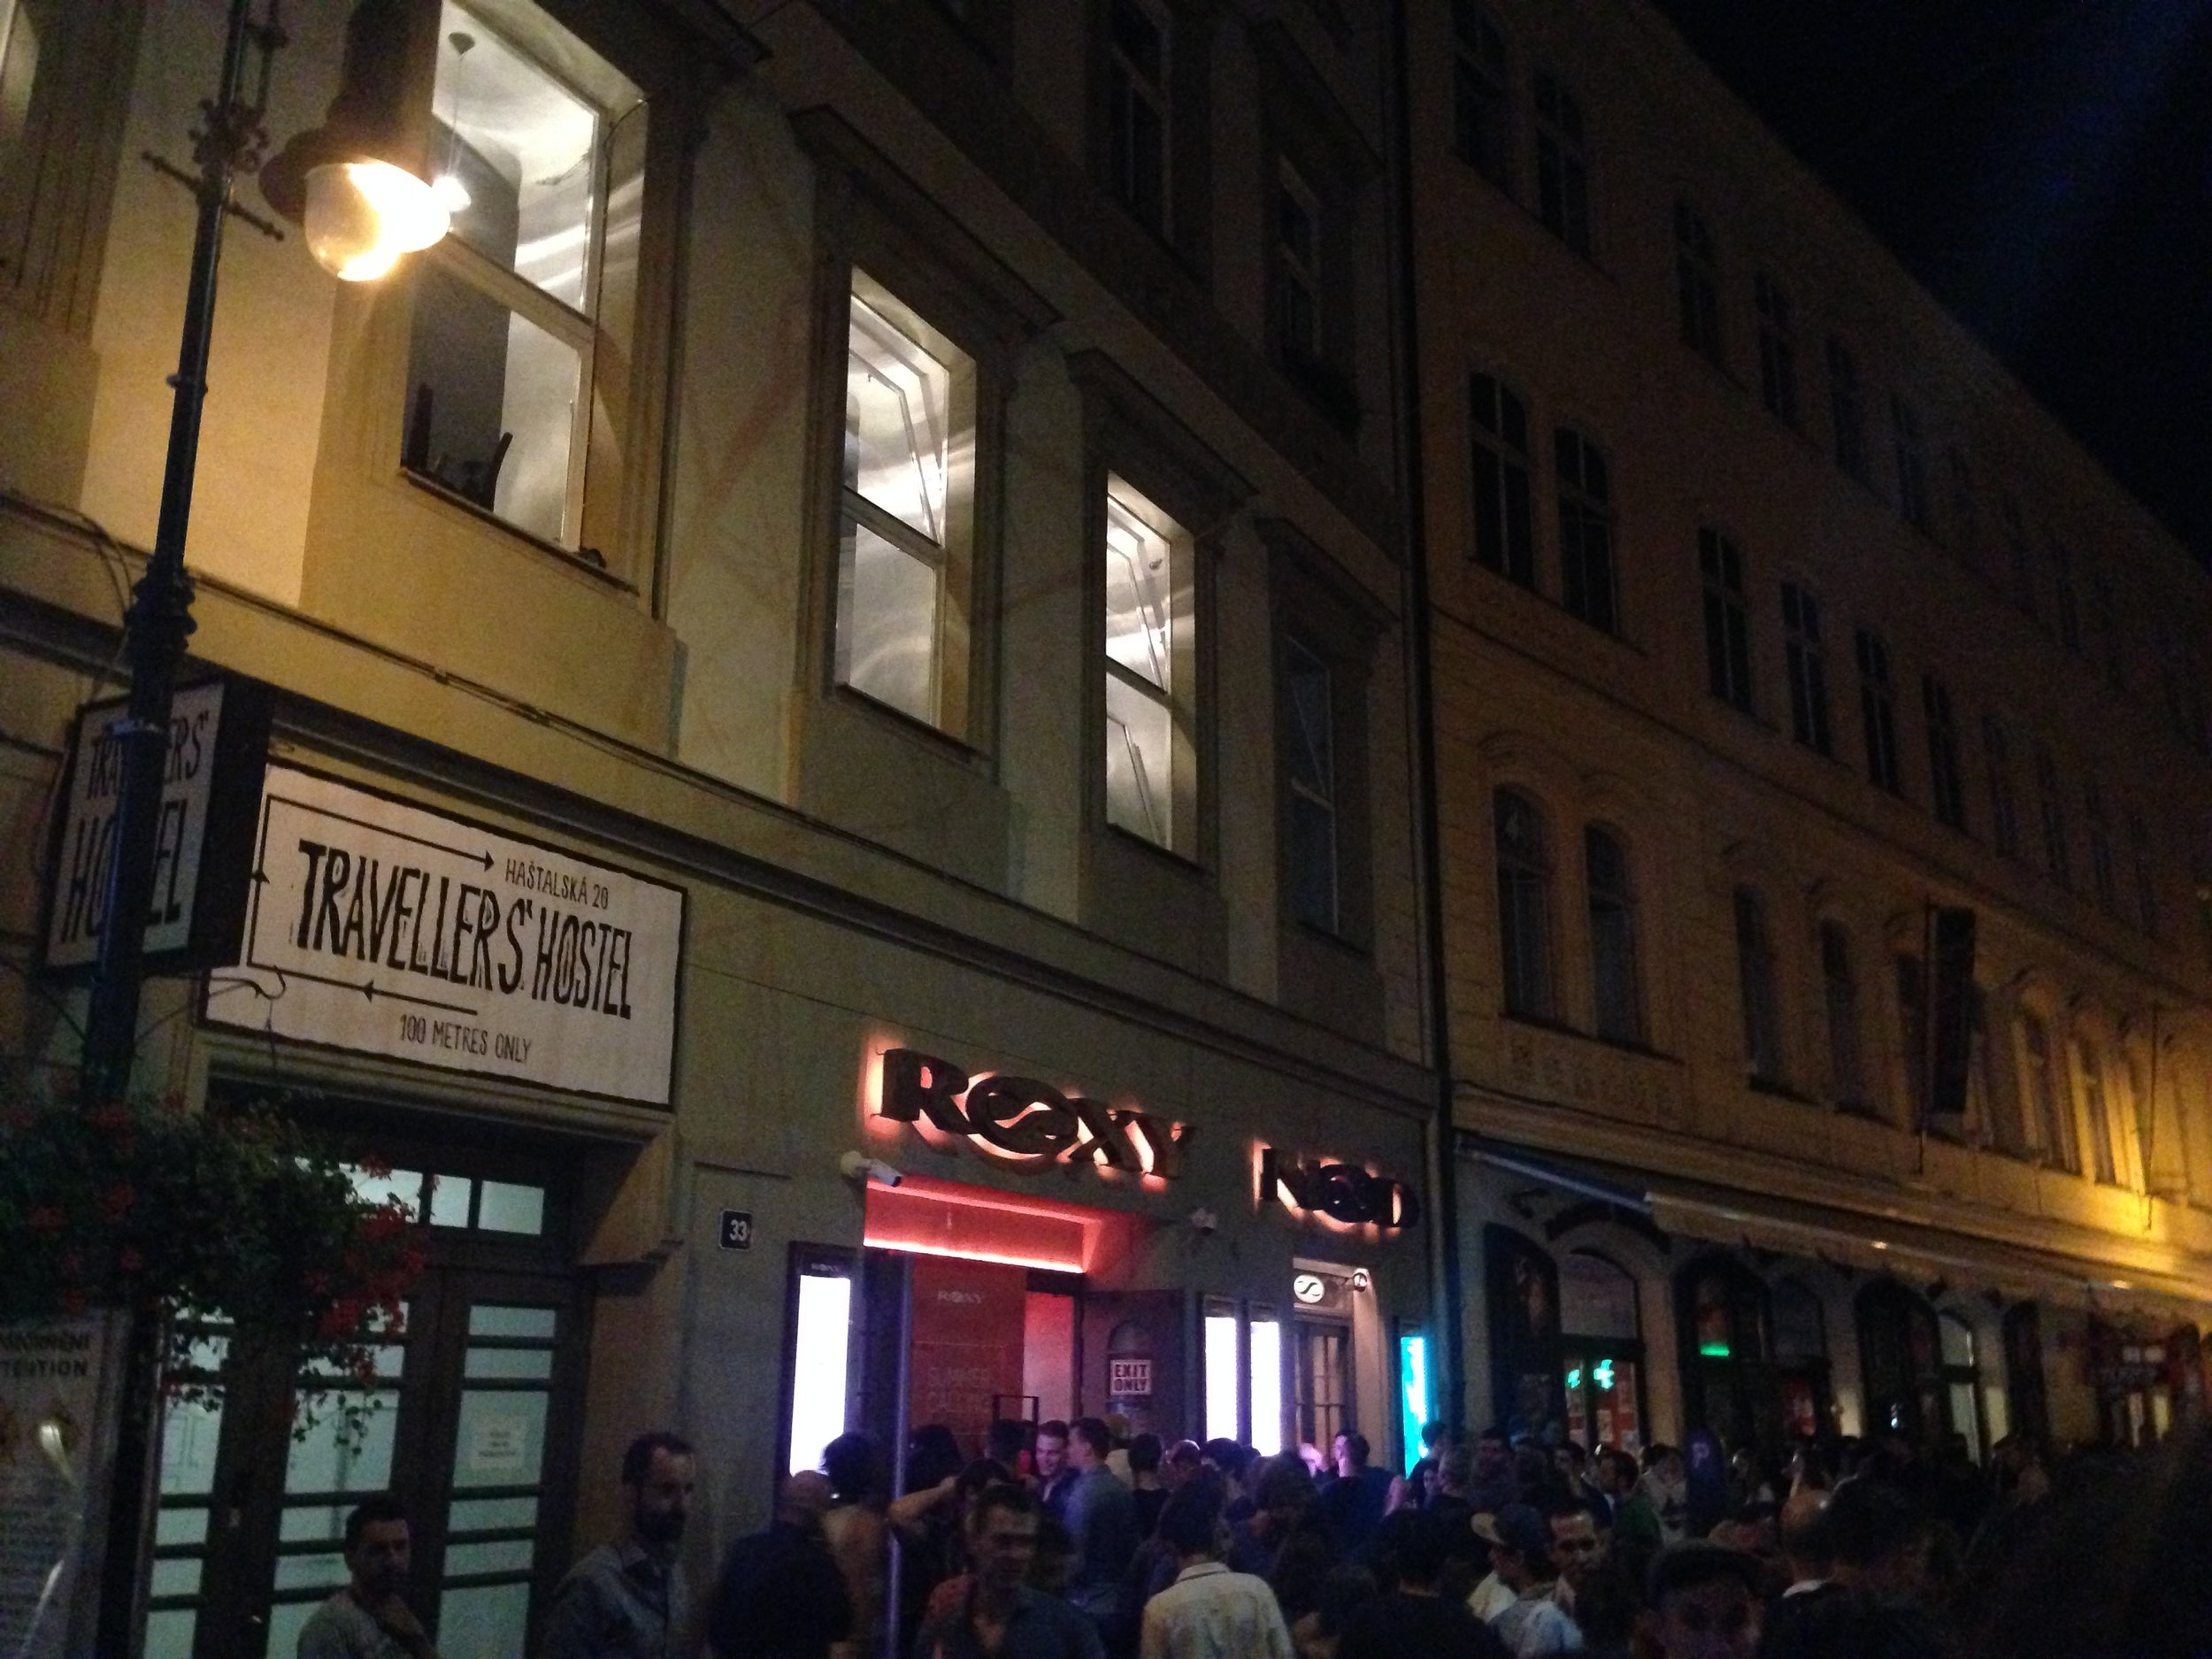 Queuing up to get into Roxy on a Friday night. As you can see from the crowds it is a hotspot for partygoers.